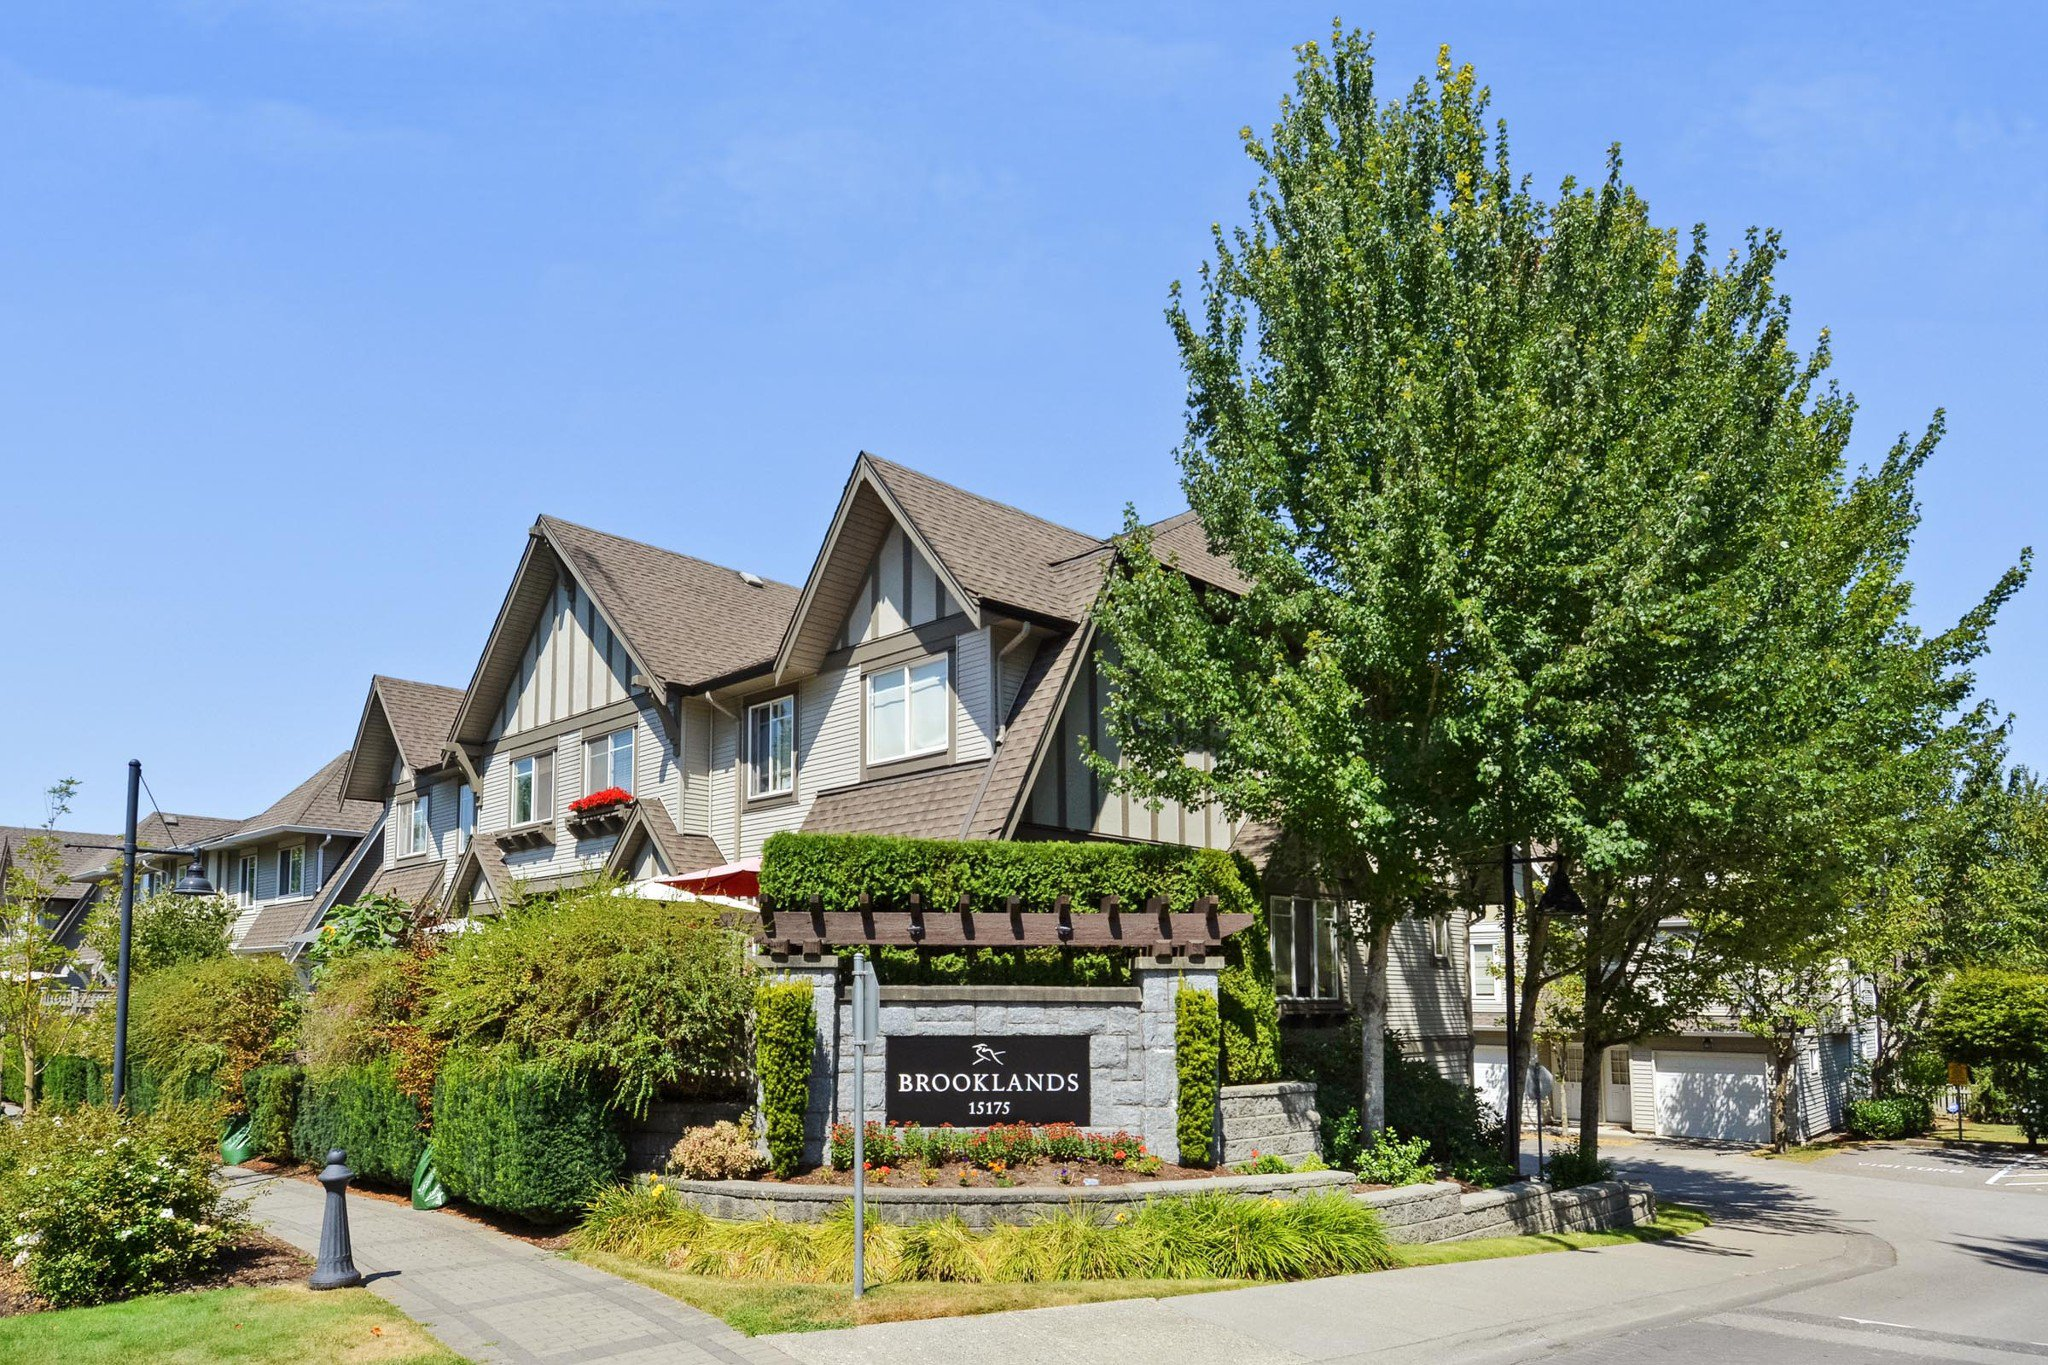 """Main Photo: 83 15175 62A Avenue in Surrey: Sullivan Station Townhouse for sale in """"Brooklands"""" : MLS®# R2296846"""